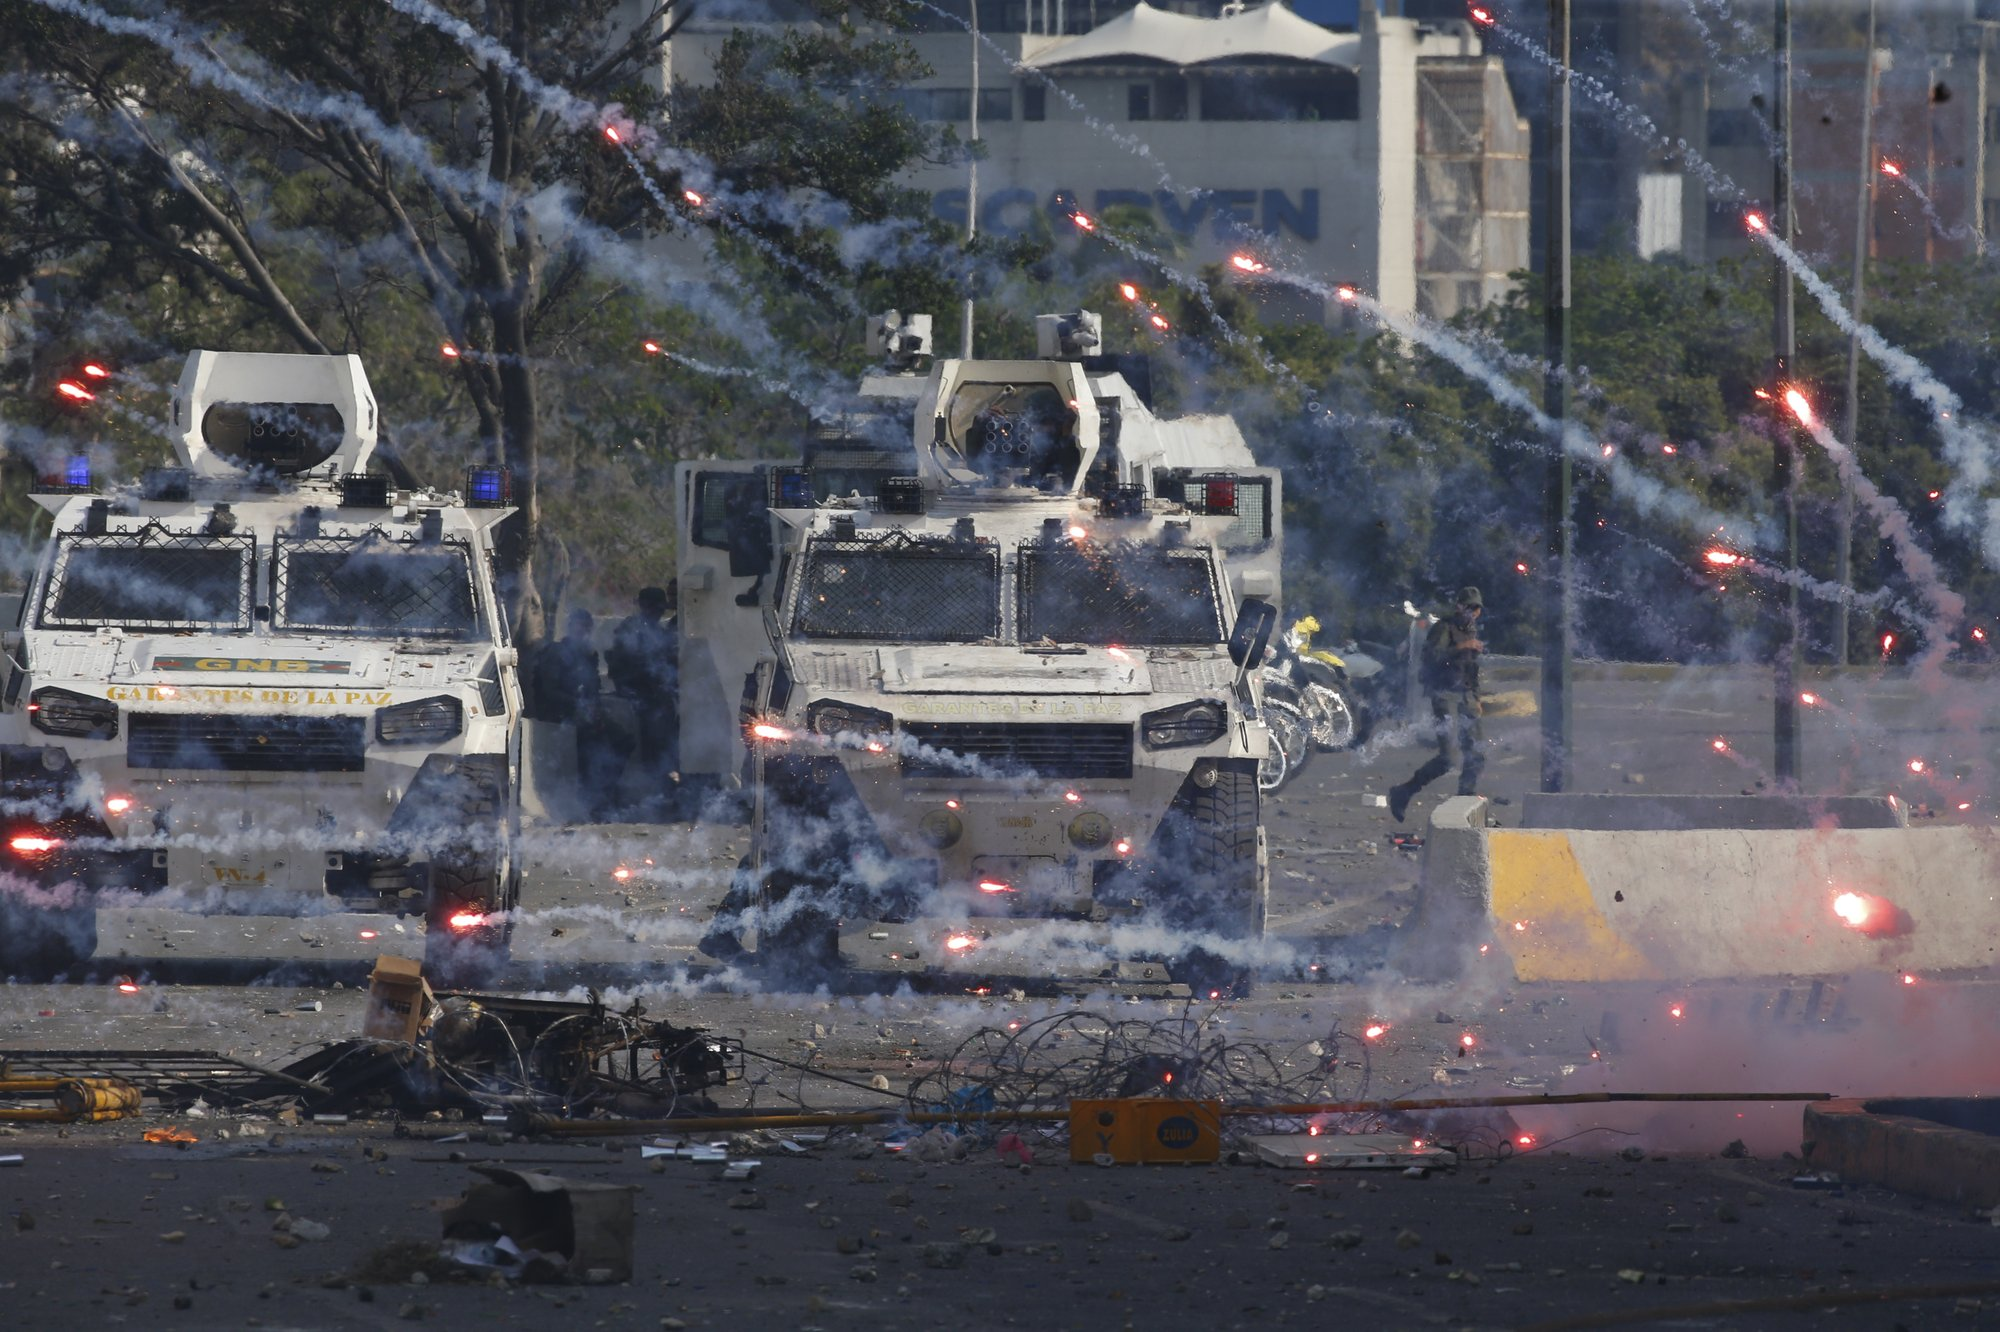 """Rival Protests For Labor Day in Venezuela. Russia Warns of """"Grave Consequences"""" If US Intervenes"""